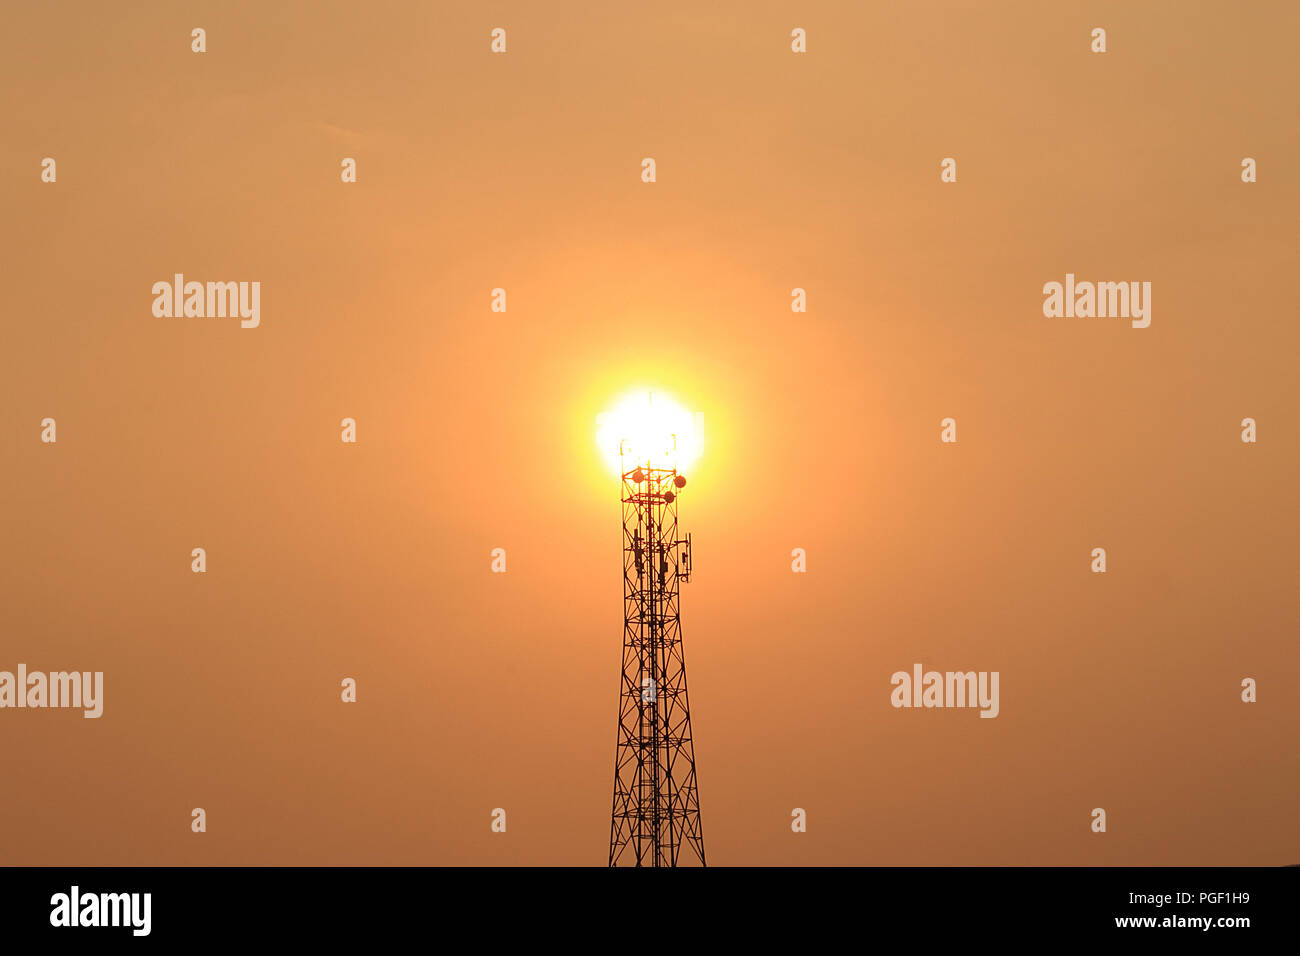 The sun shines behind the telephone tower at the top of the tower. - Stock Image